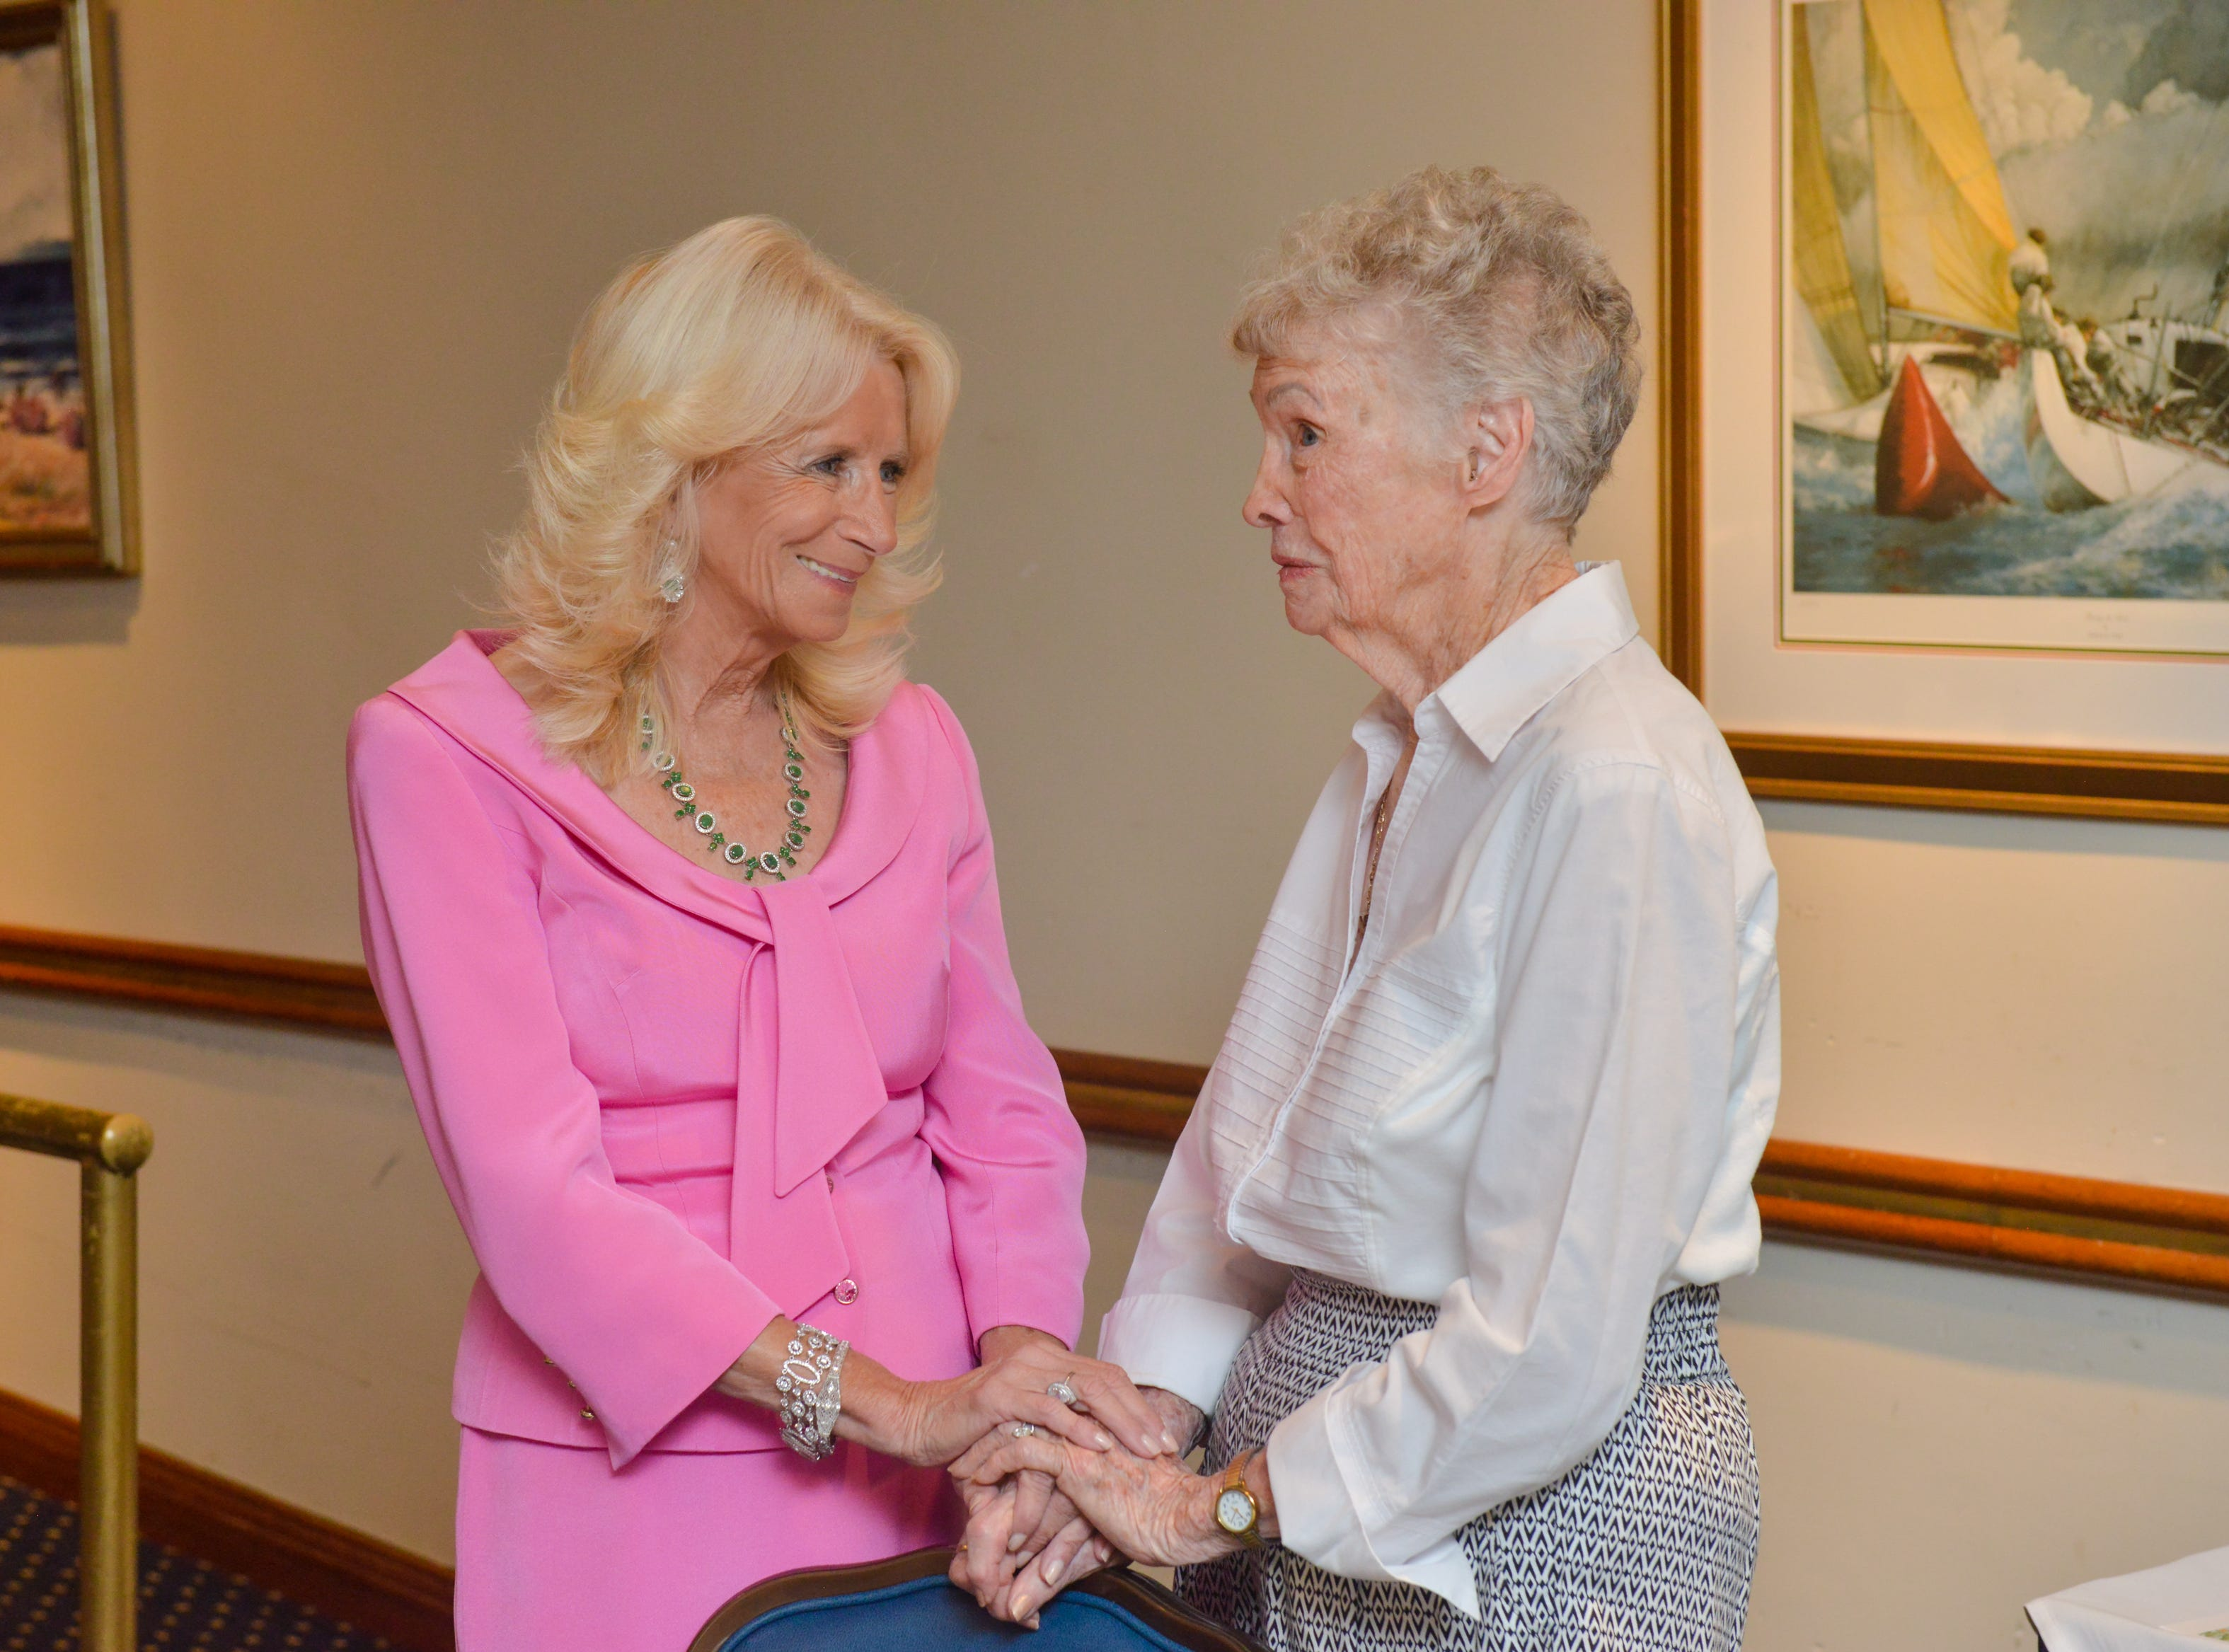 Sandy Evans-Bottieri and Dorothy Russel visit together at Friends of Sally's House luncheon at the Eau Gallie Yacht Club.